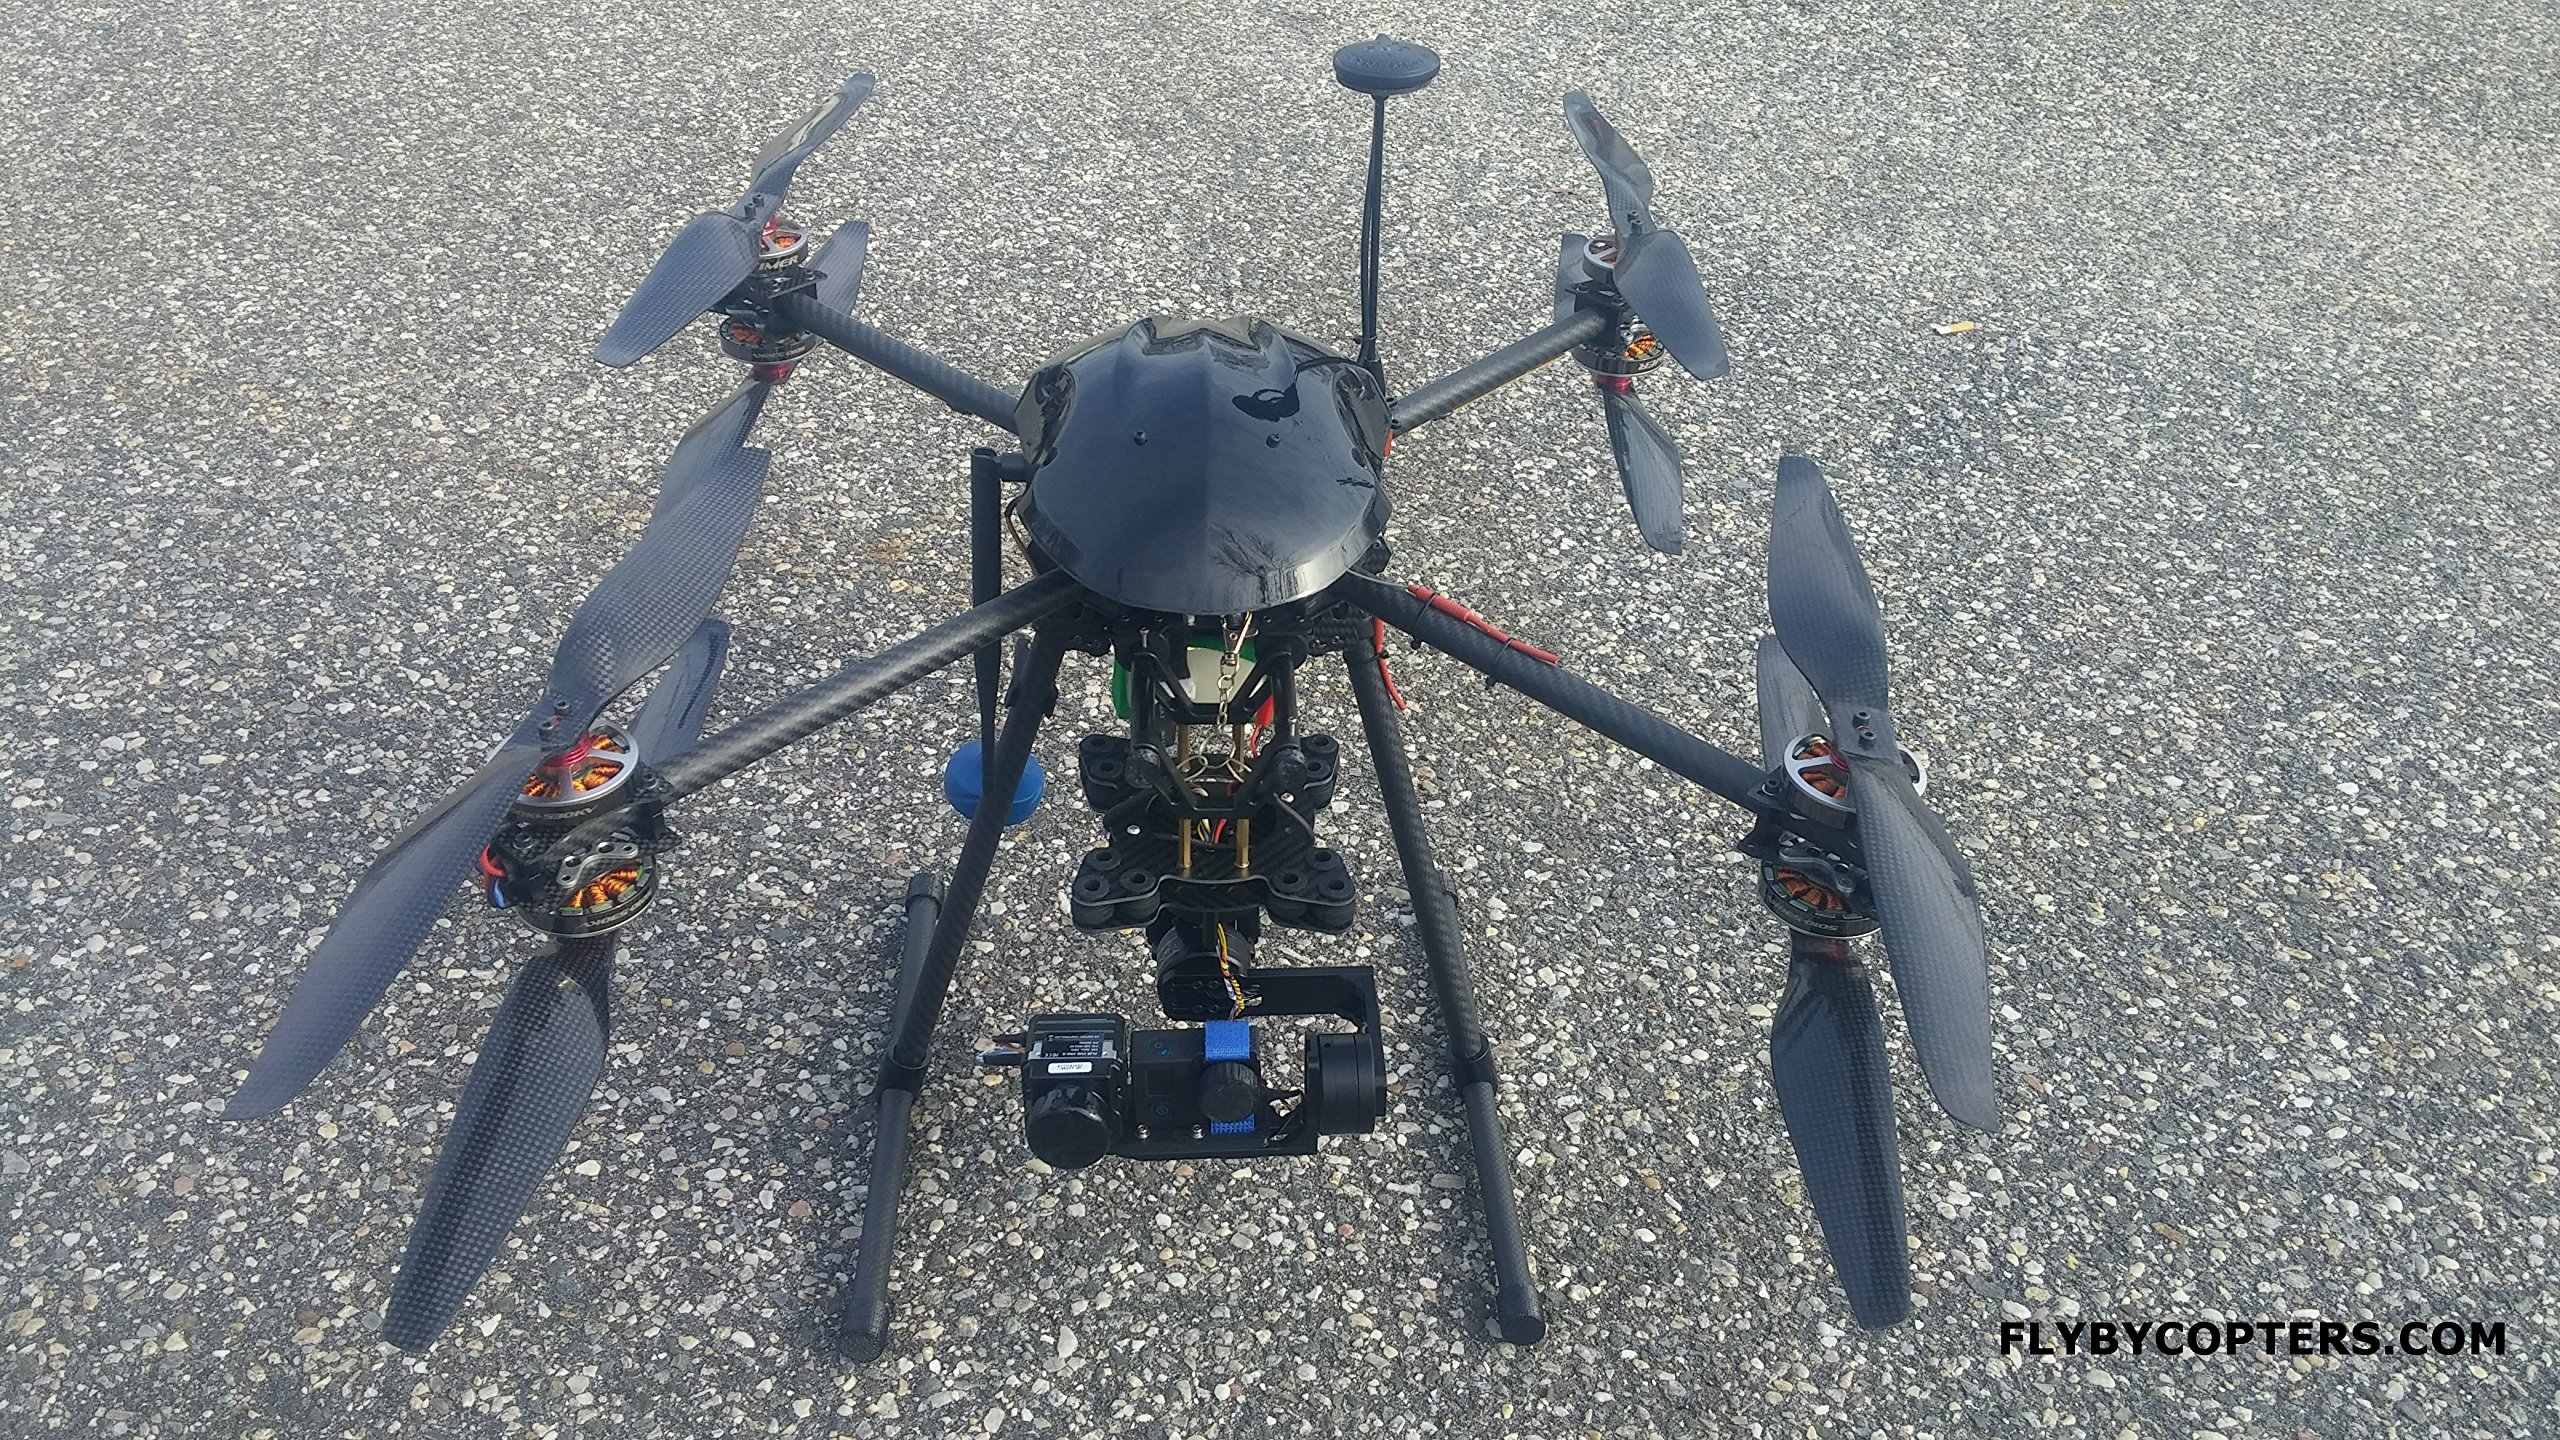 FlyByCopters Thermal Imaging X8 640 4K Quadcopter Drone With AutoPilot 3